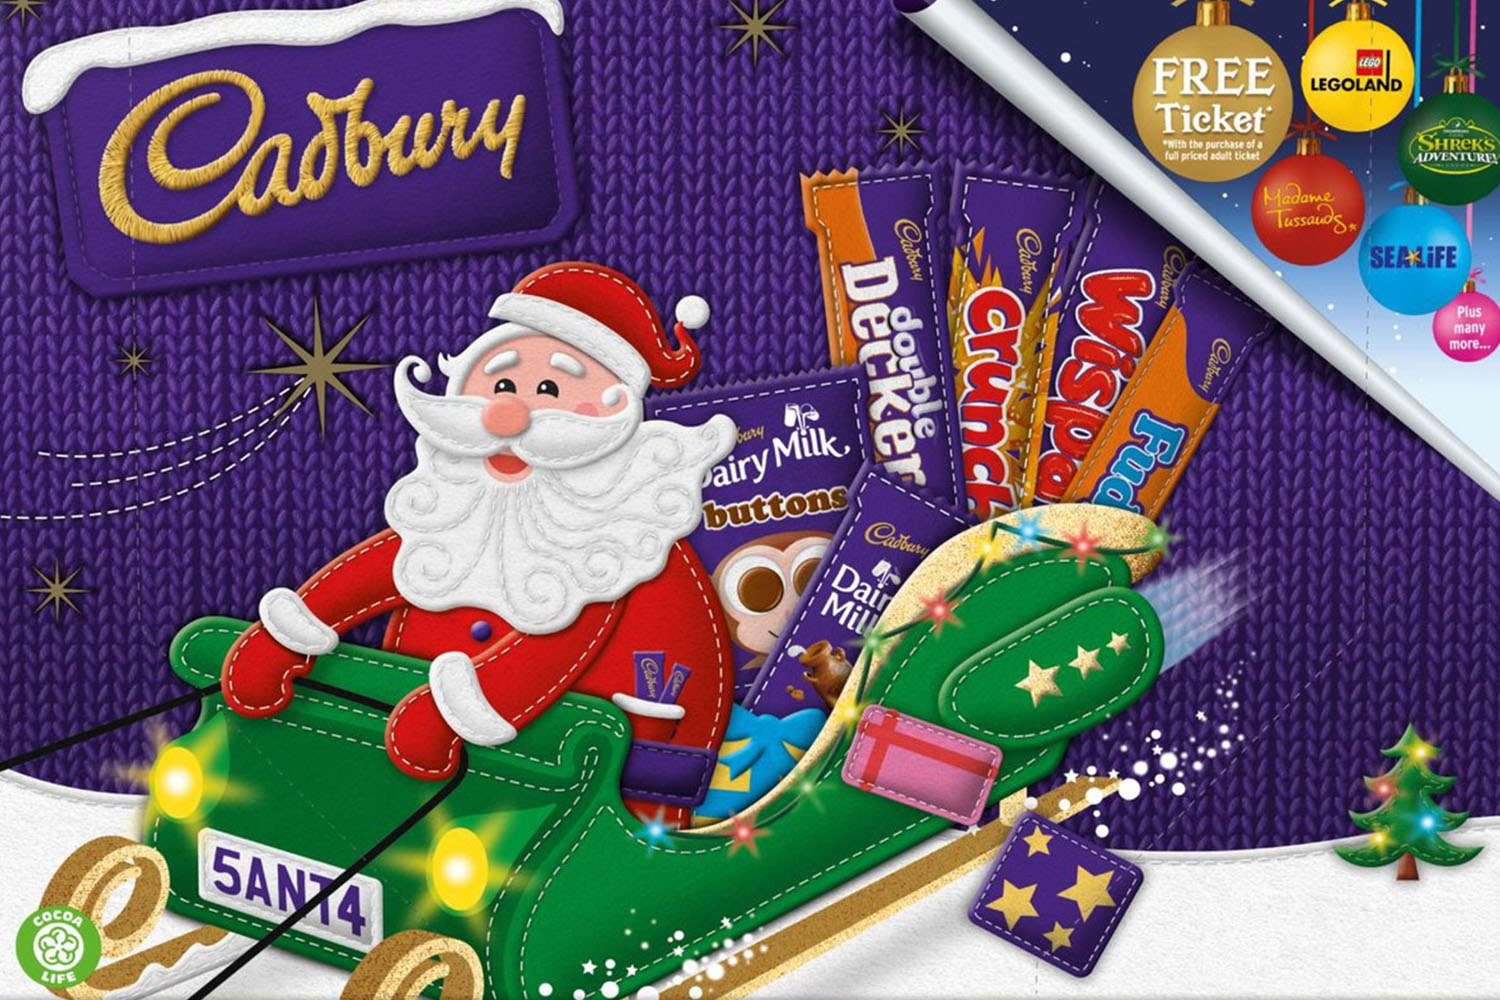 Morrisons and Tesco have slashed the price of the medium selection boxes in half